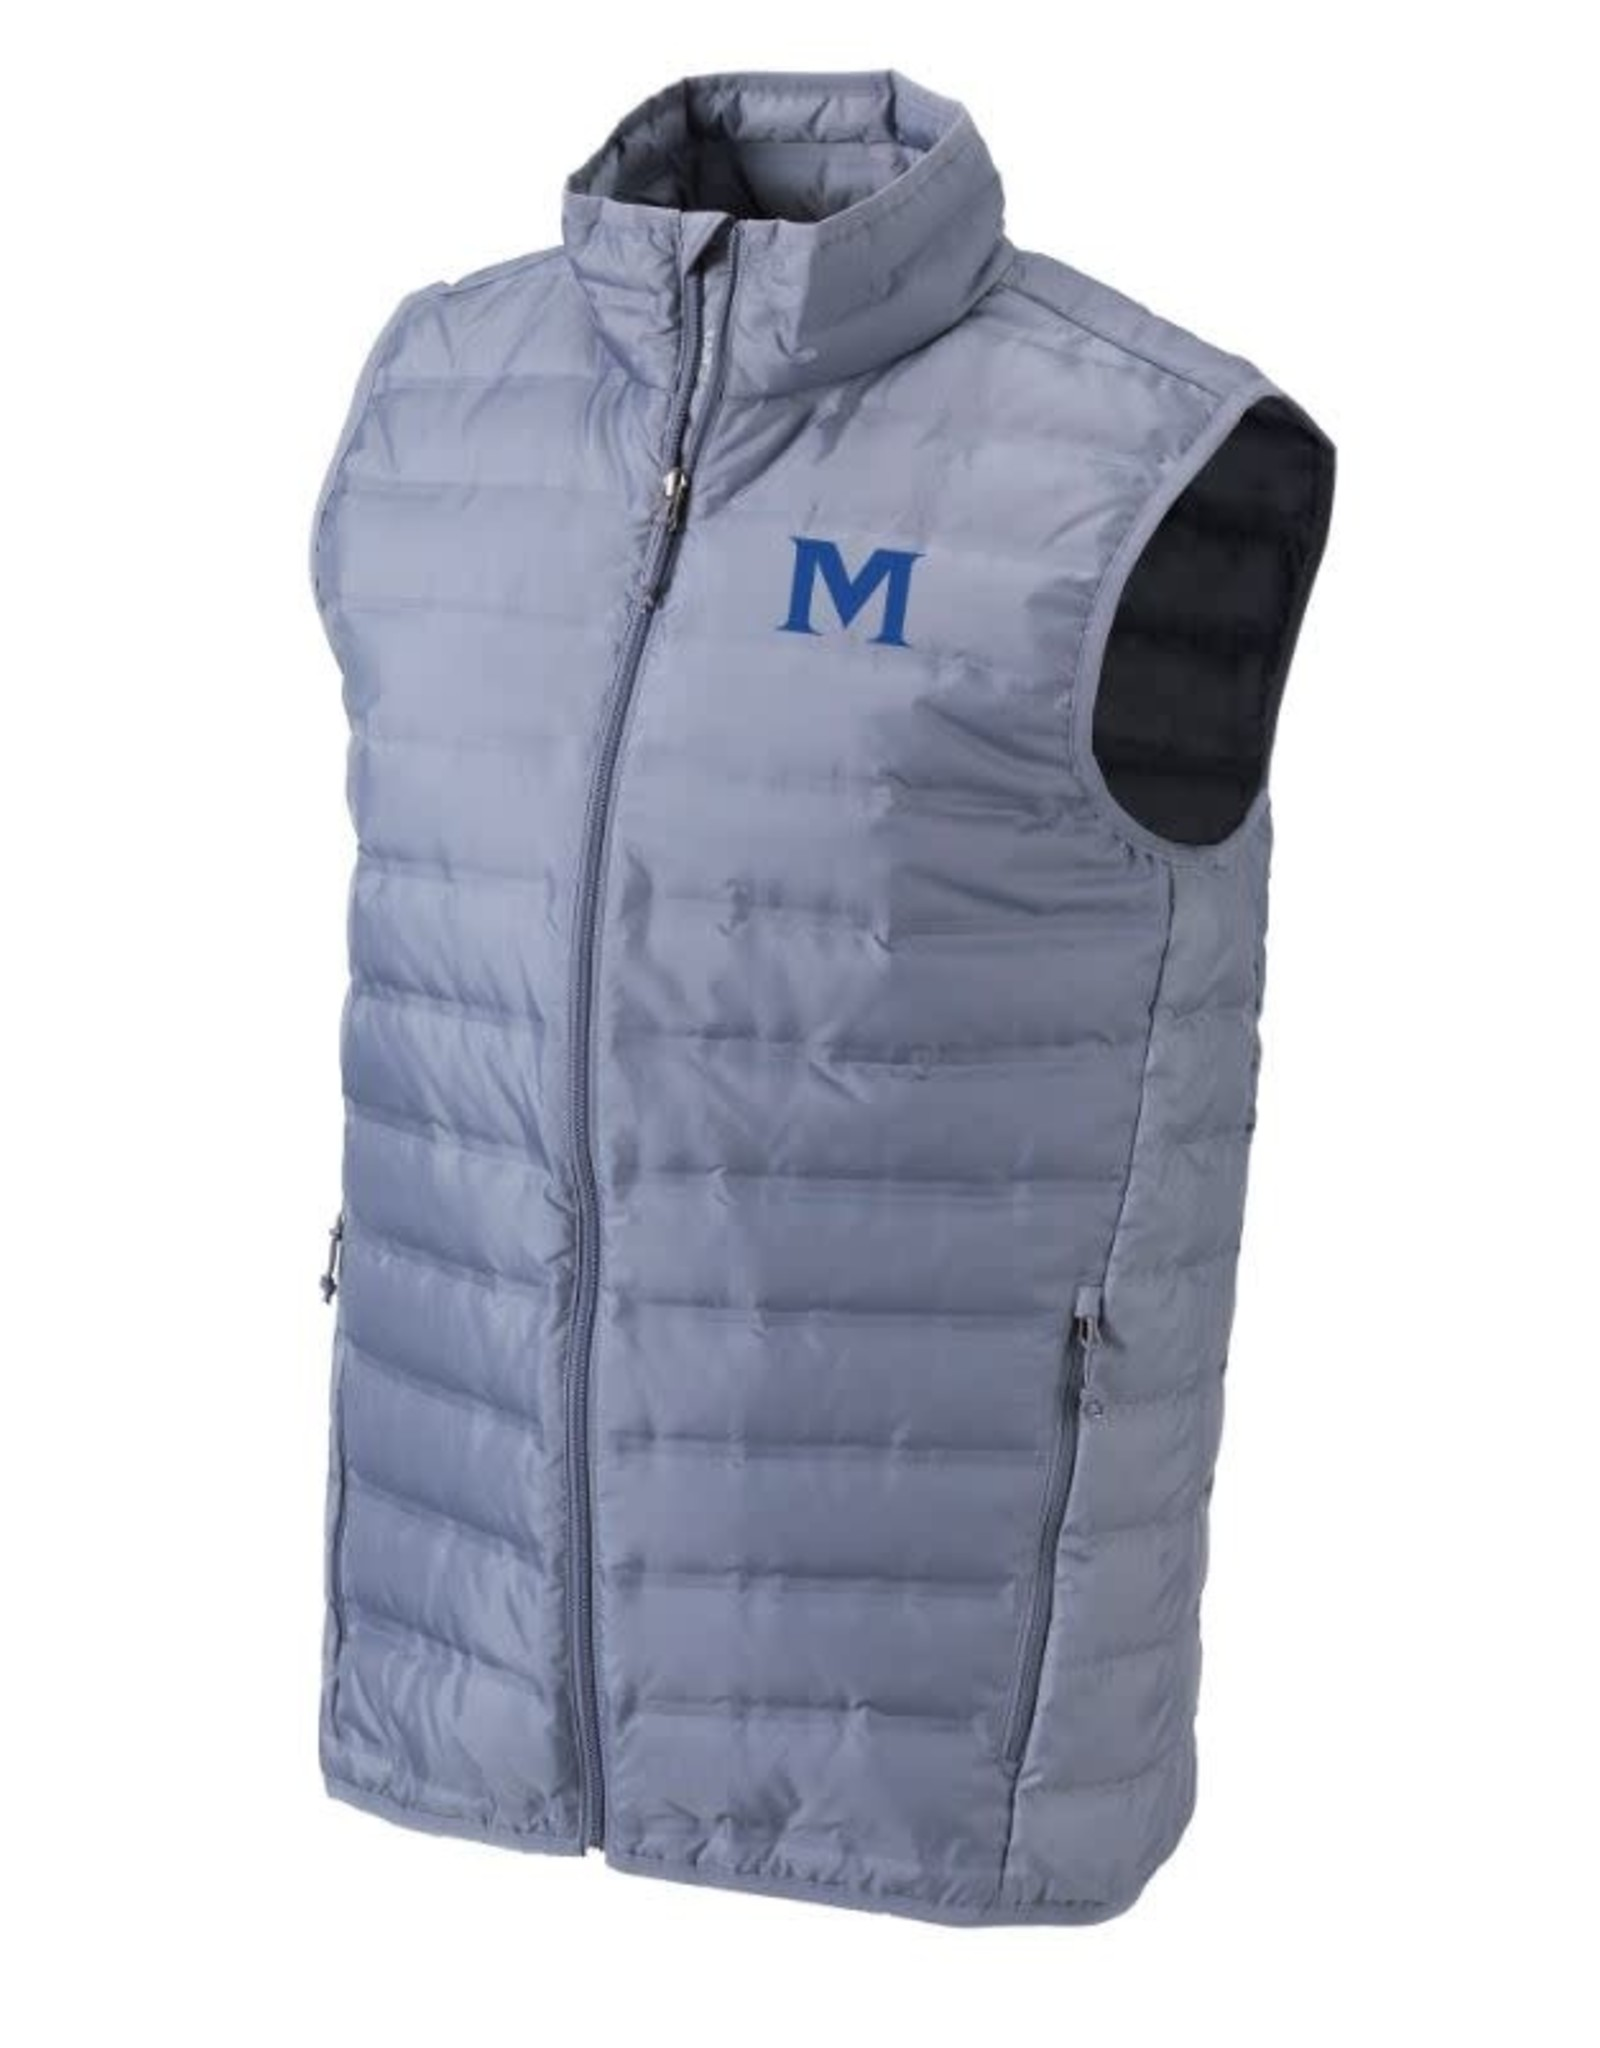 COLUMBIA MENS COLUMBIA LAKE 22 VEST